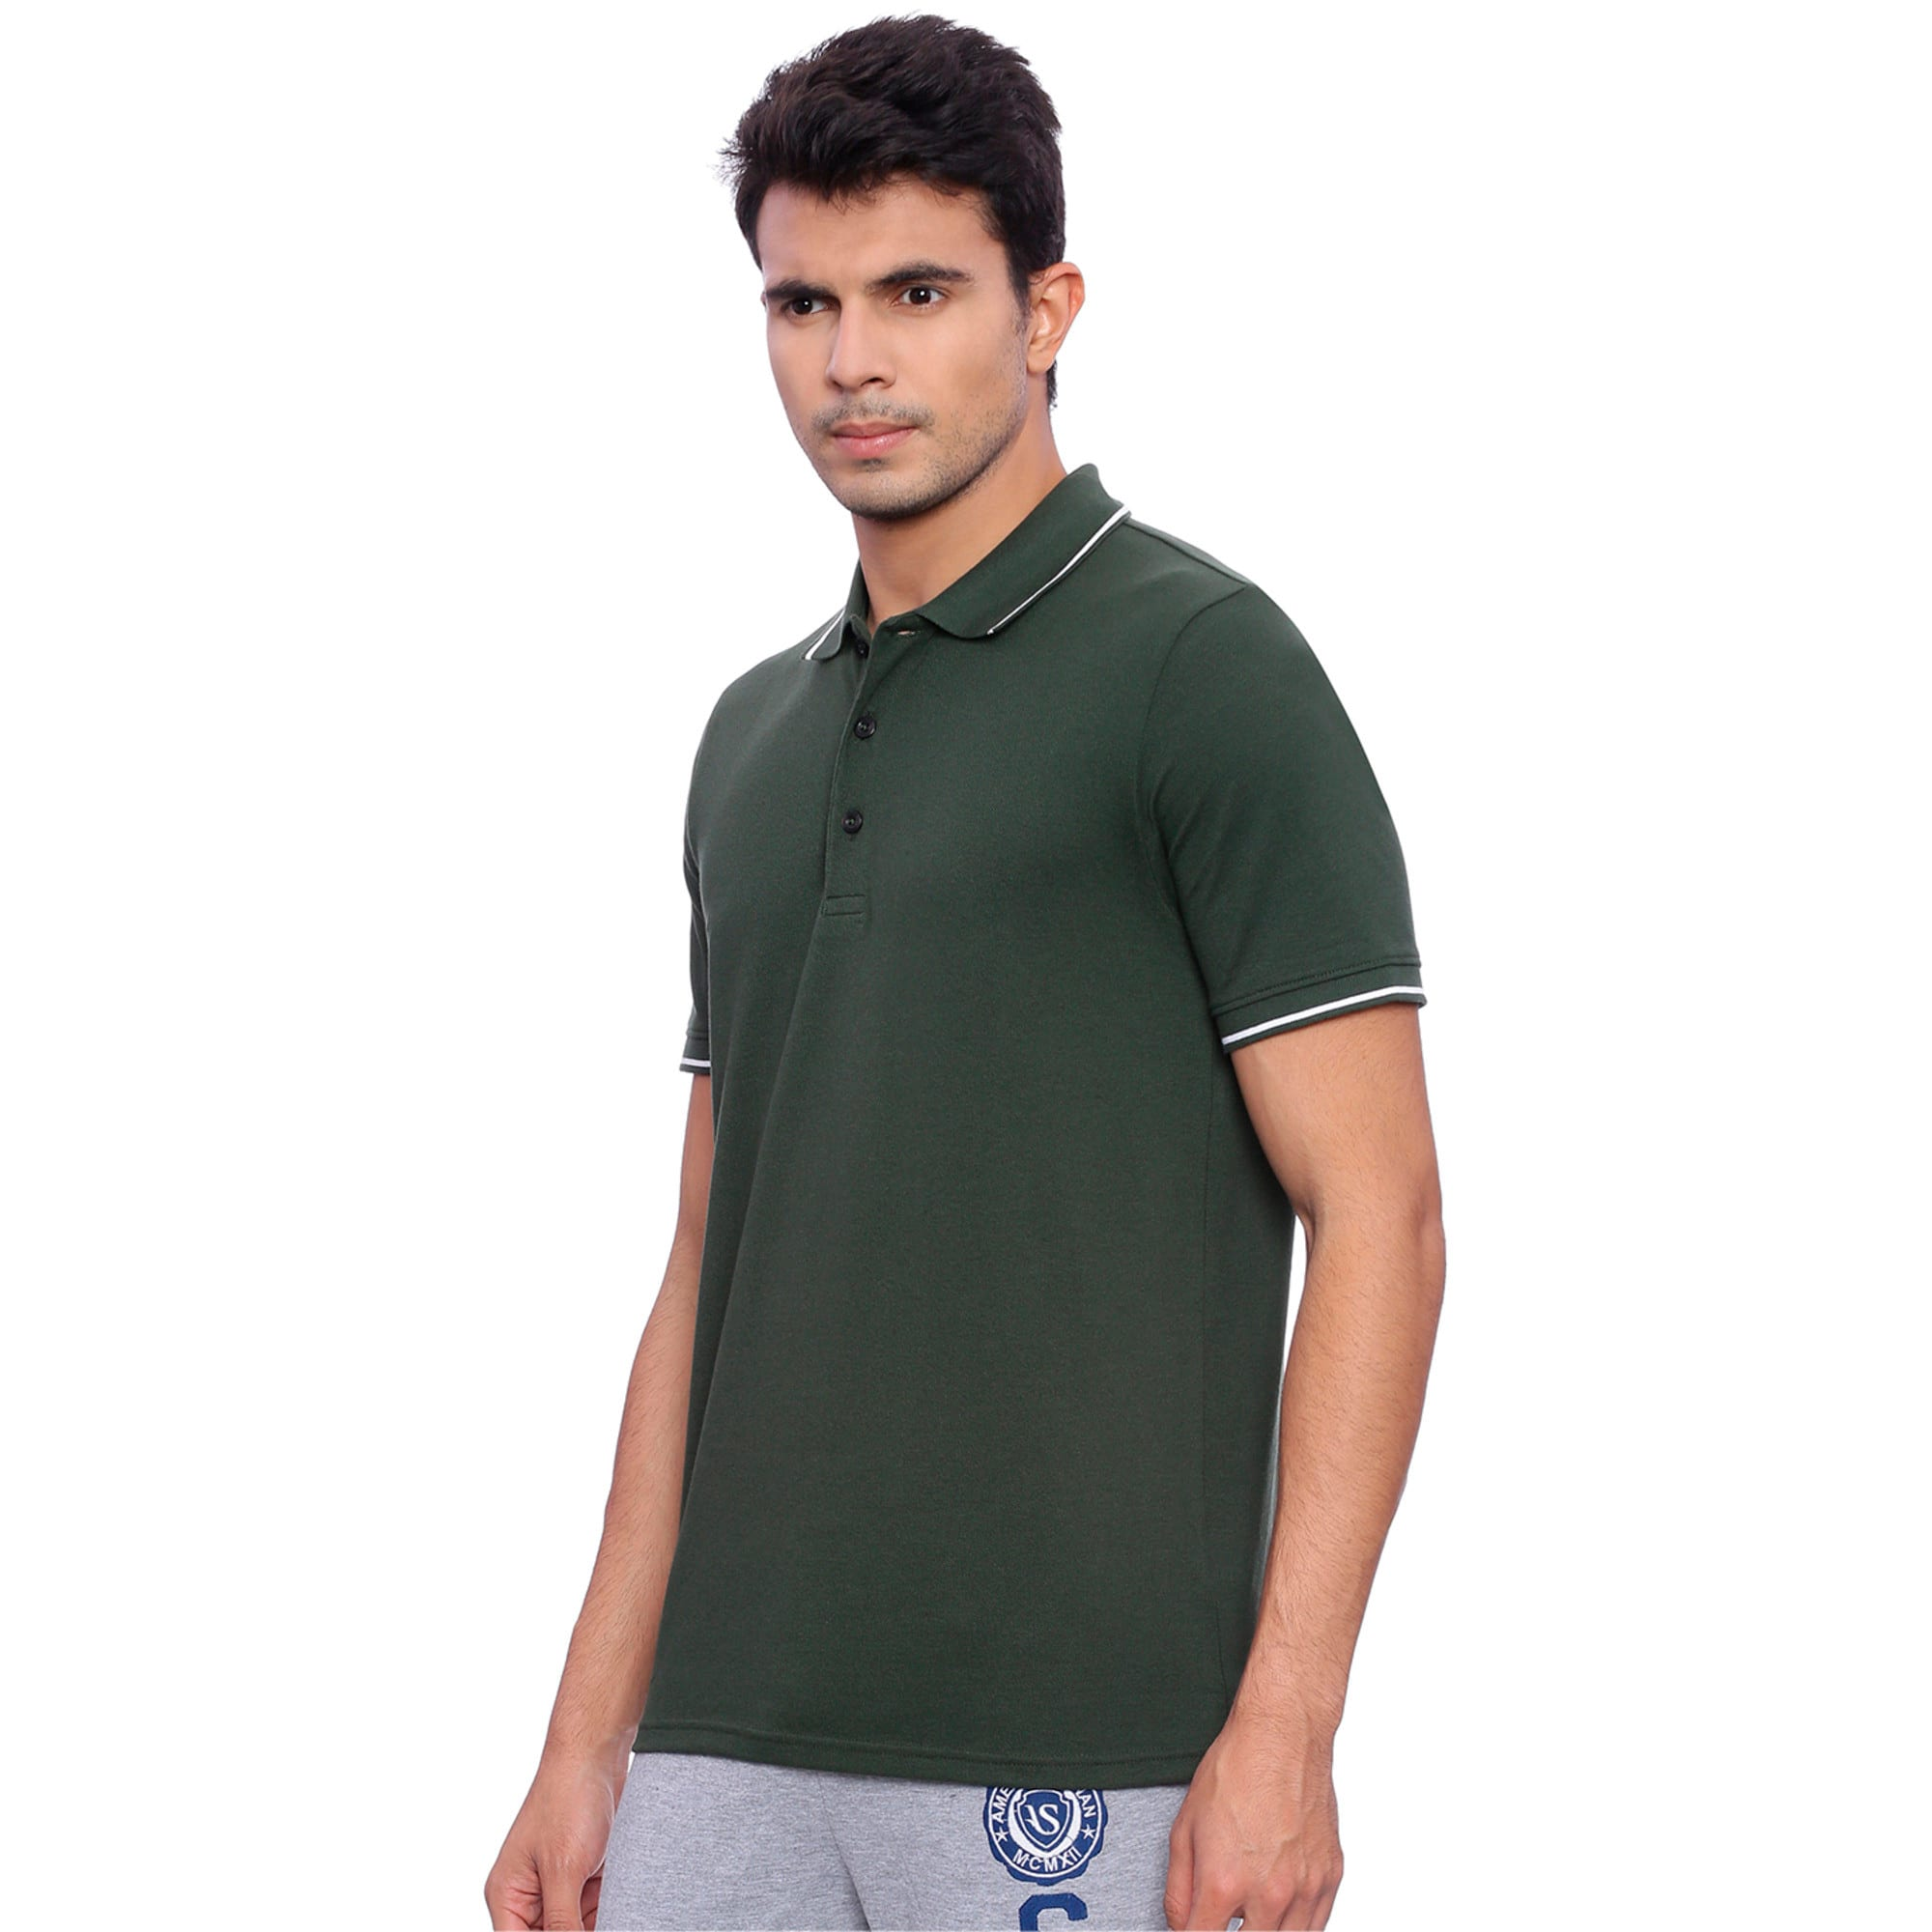 Thumbnail 2 of Men s ESS Tipping Polo, Olive Night, medium-IND